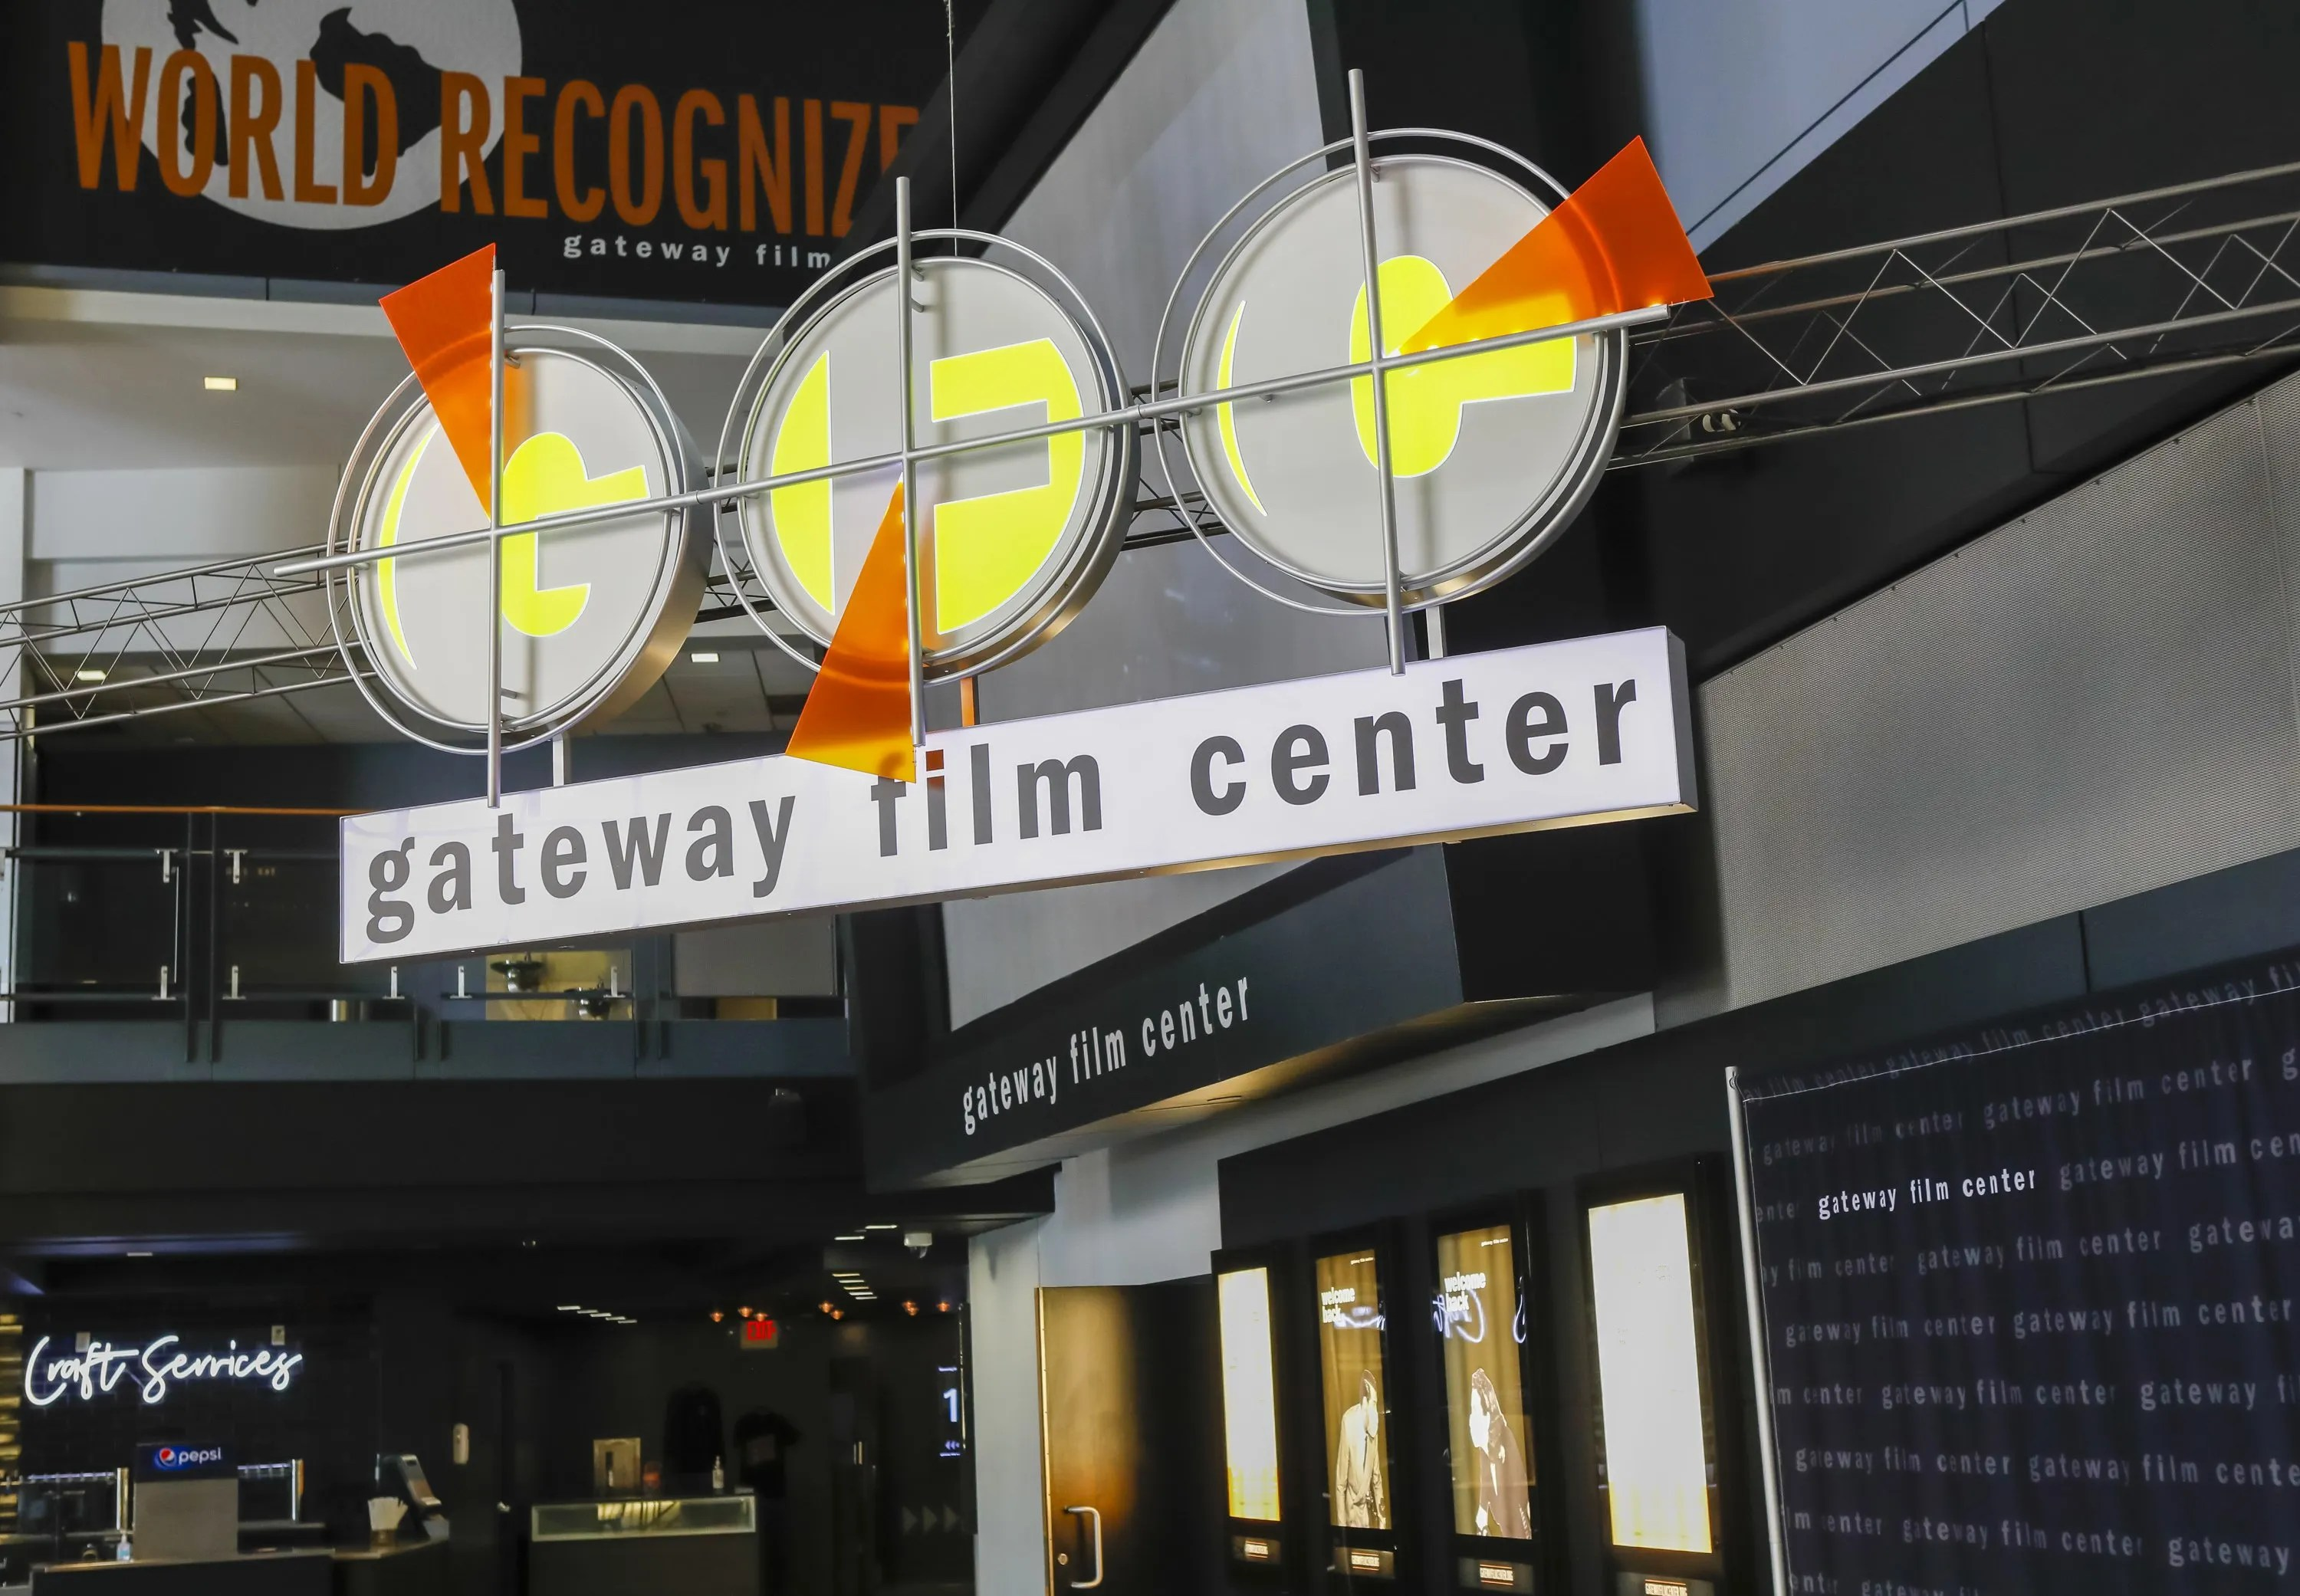 When the Gateway Film Center opens on May 27, it will increase to 50% capacity.